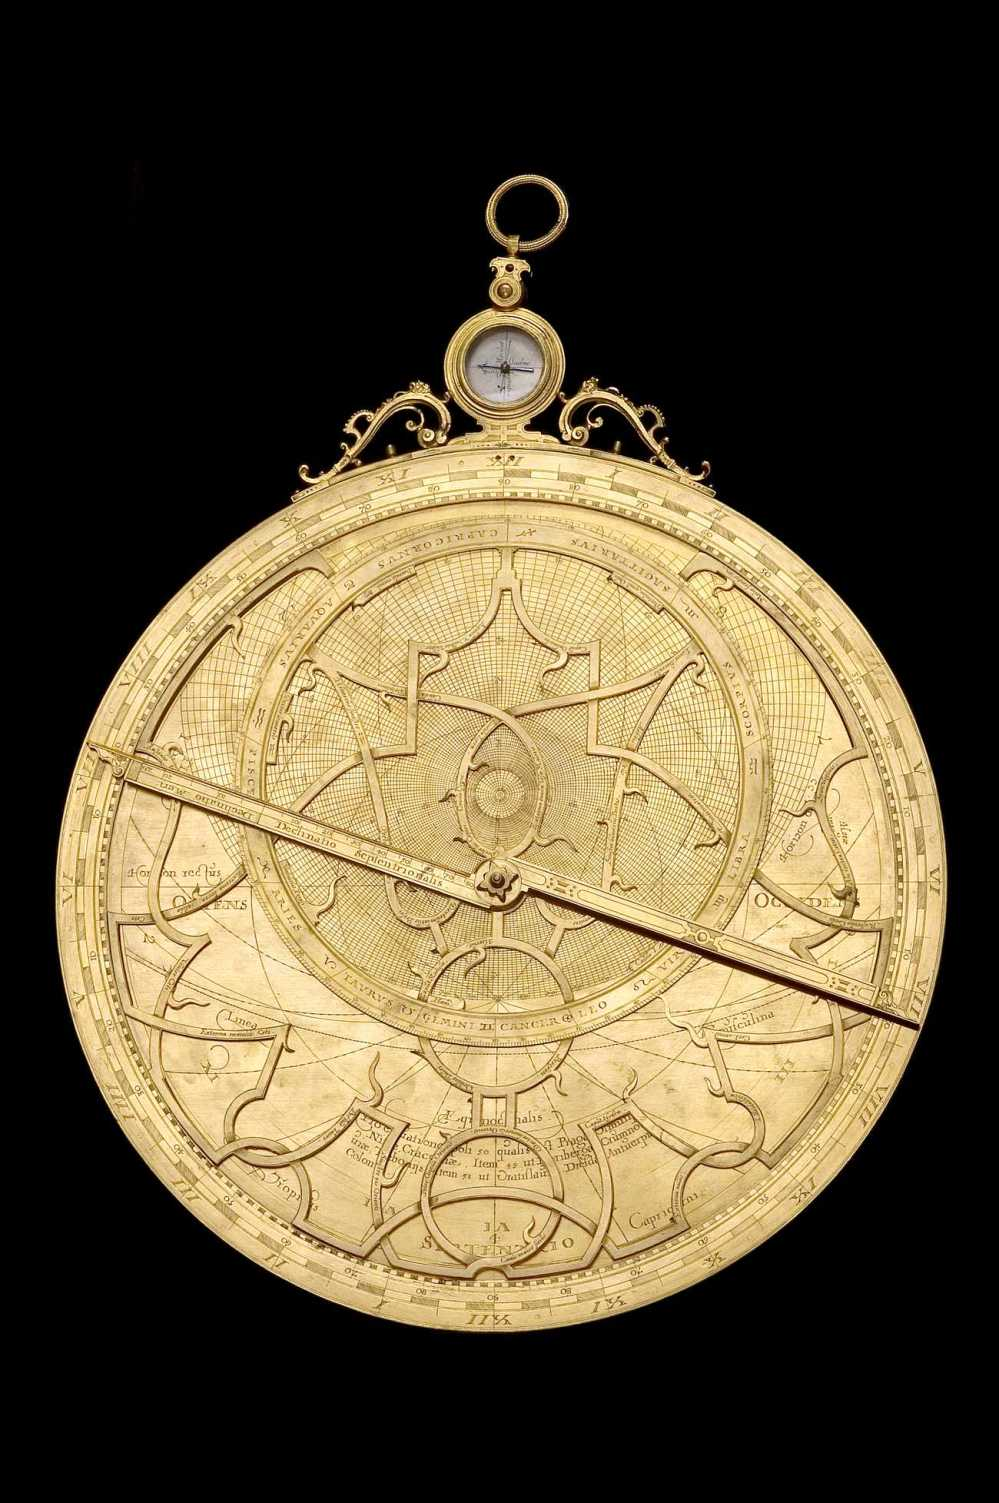 preview image for Astrolabe, by Erasmus Habermel, Prague?, c. 1590